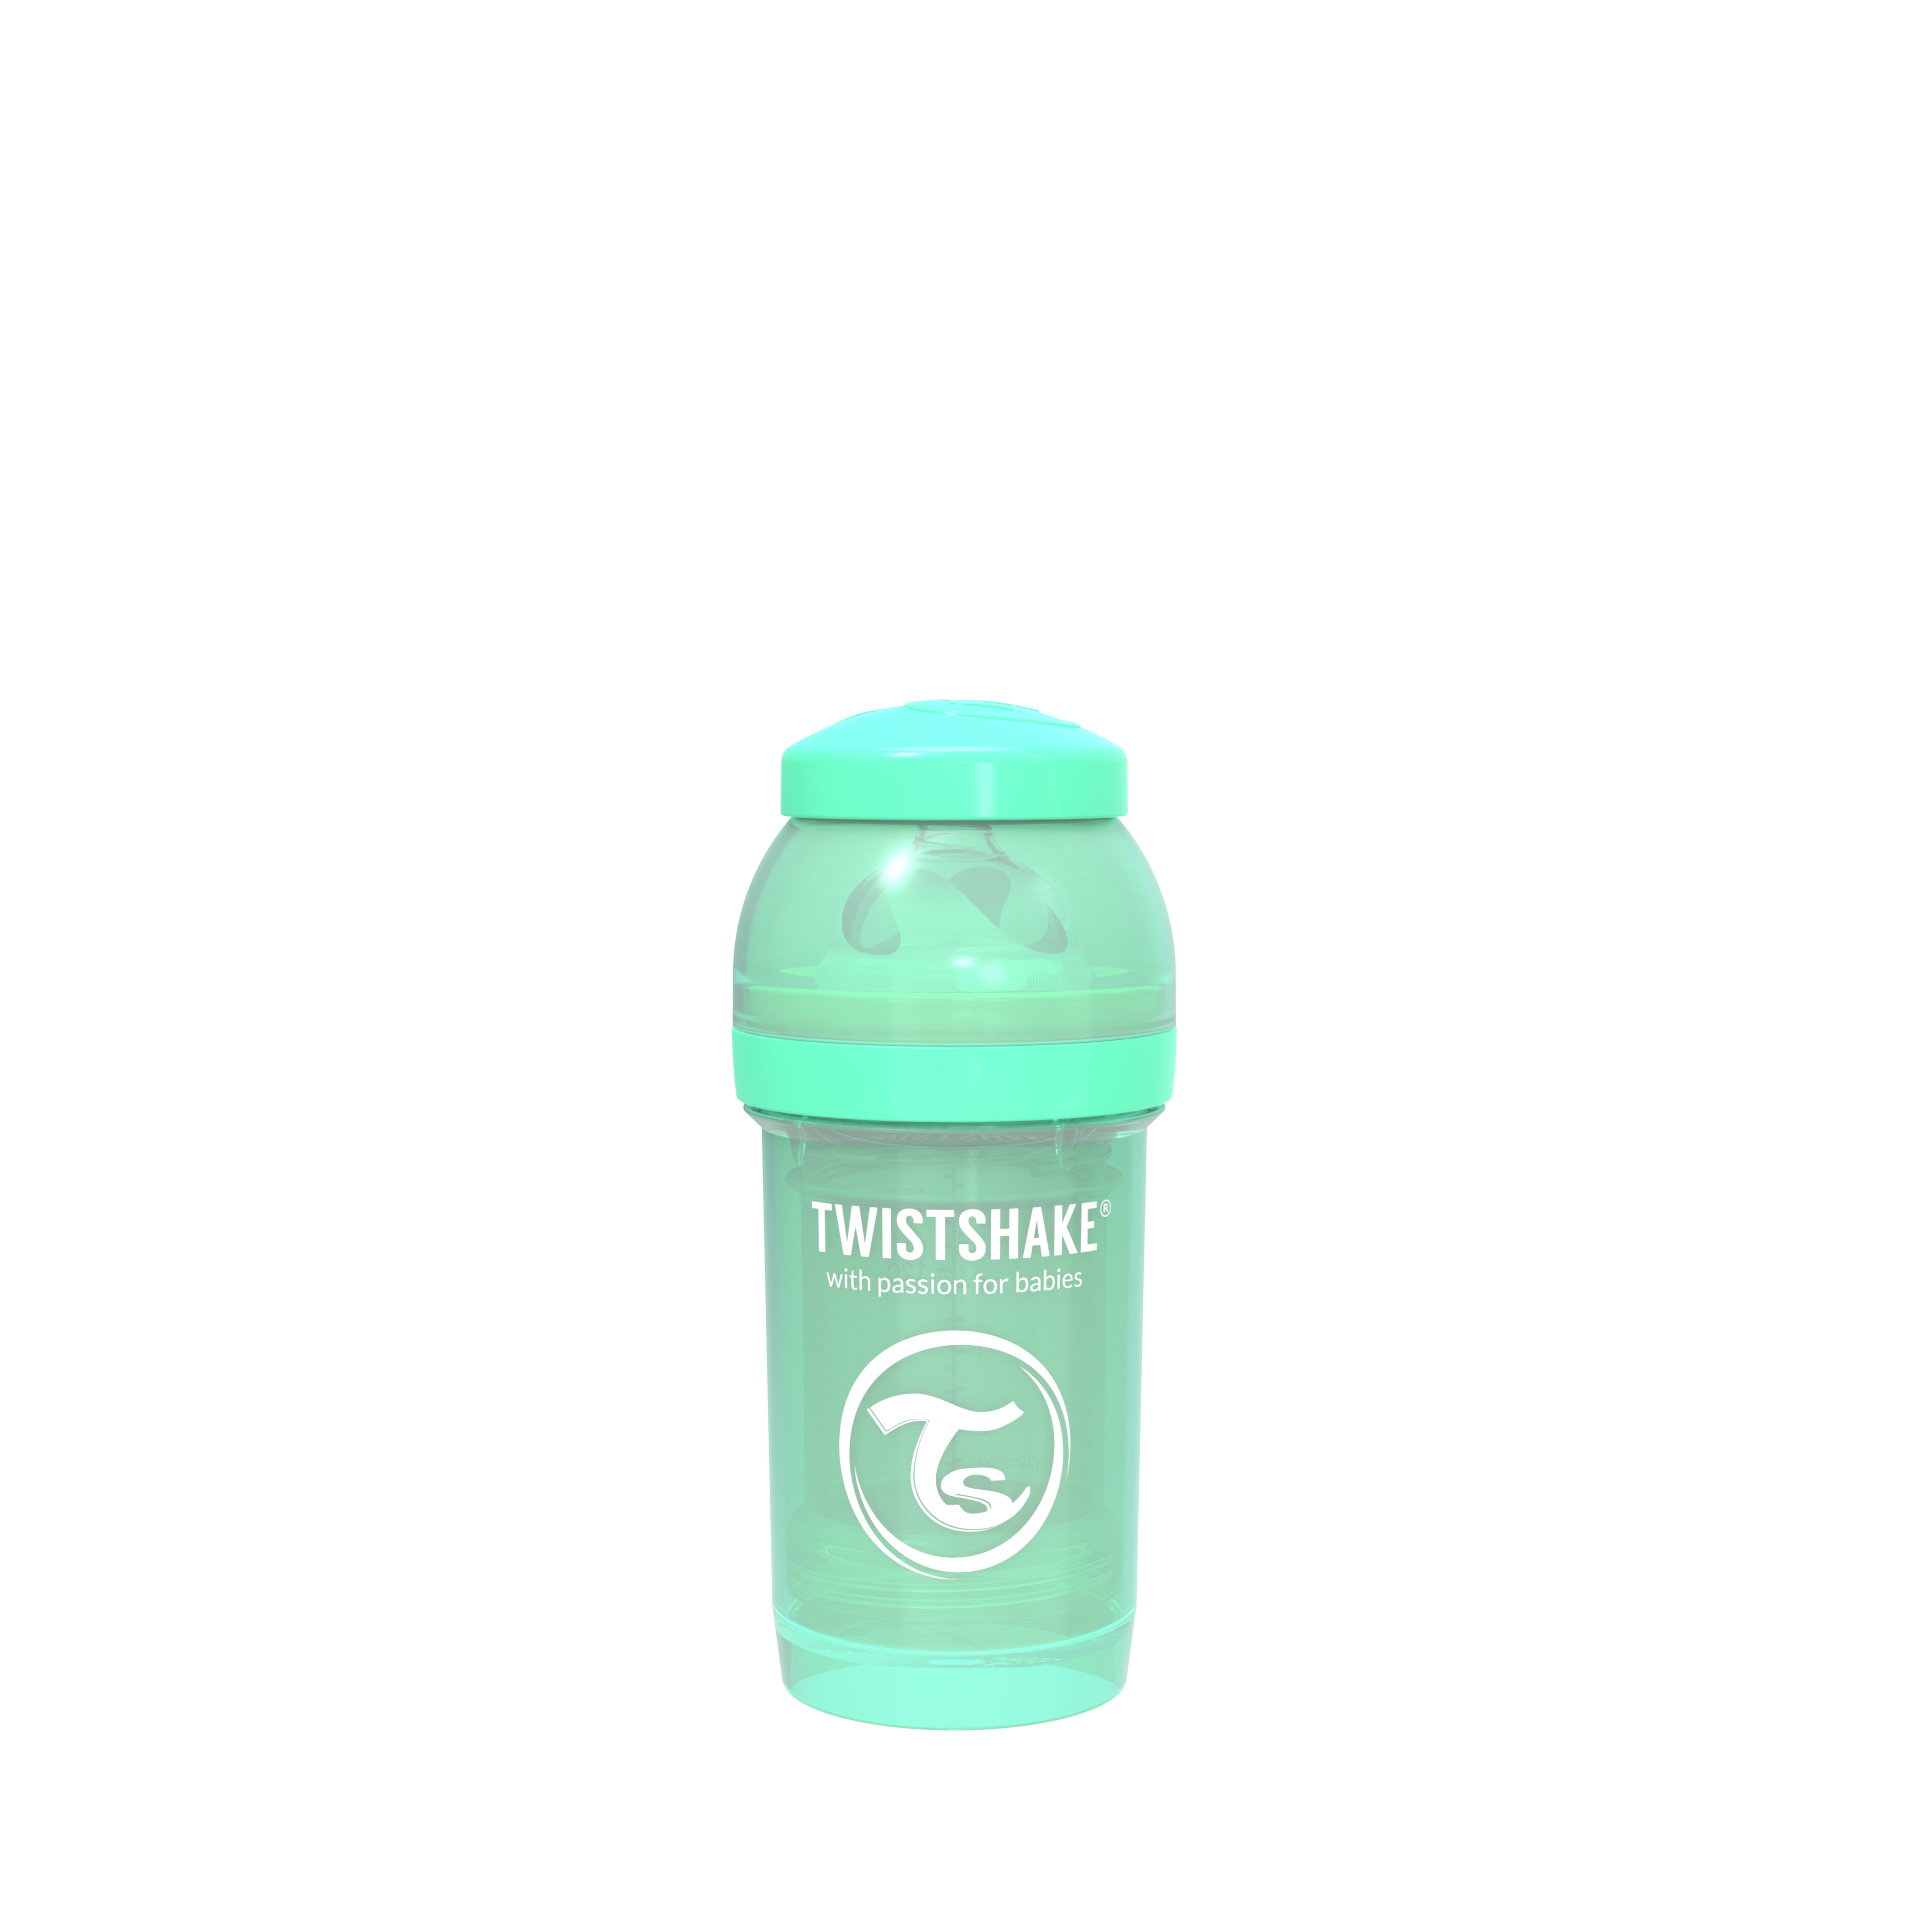 Twistshake Anti-Colic 180ml - Pastel Green